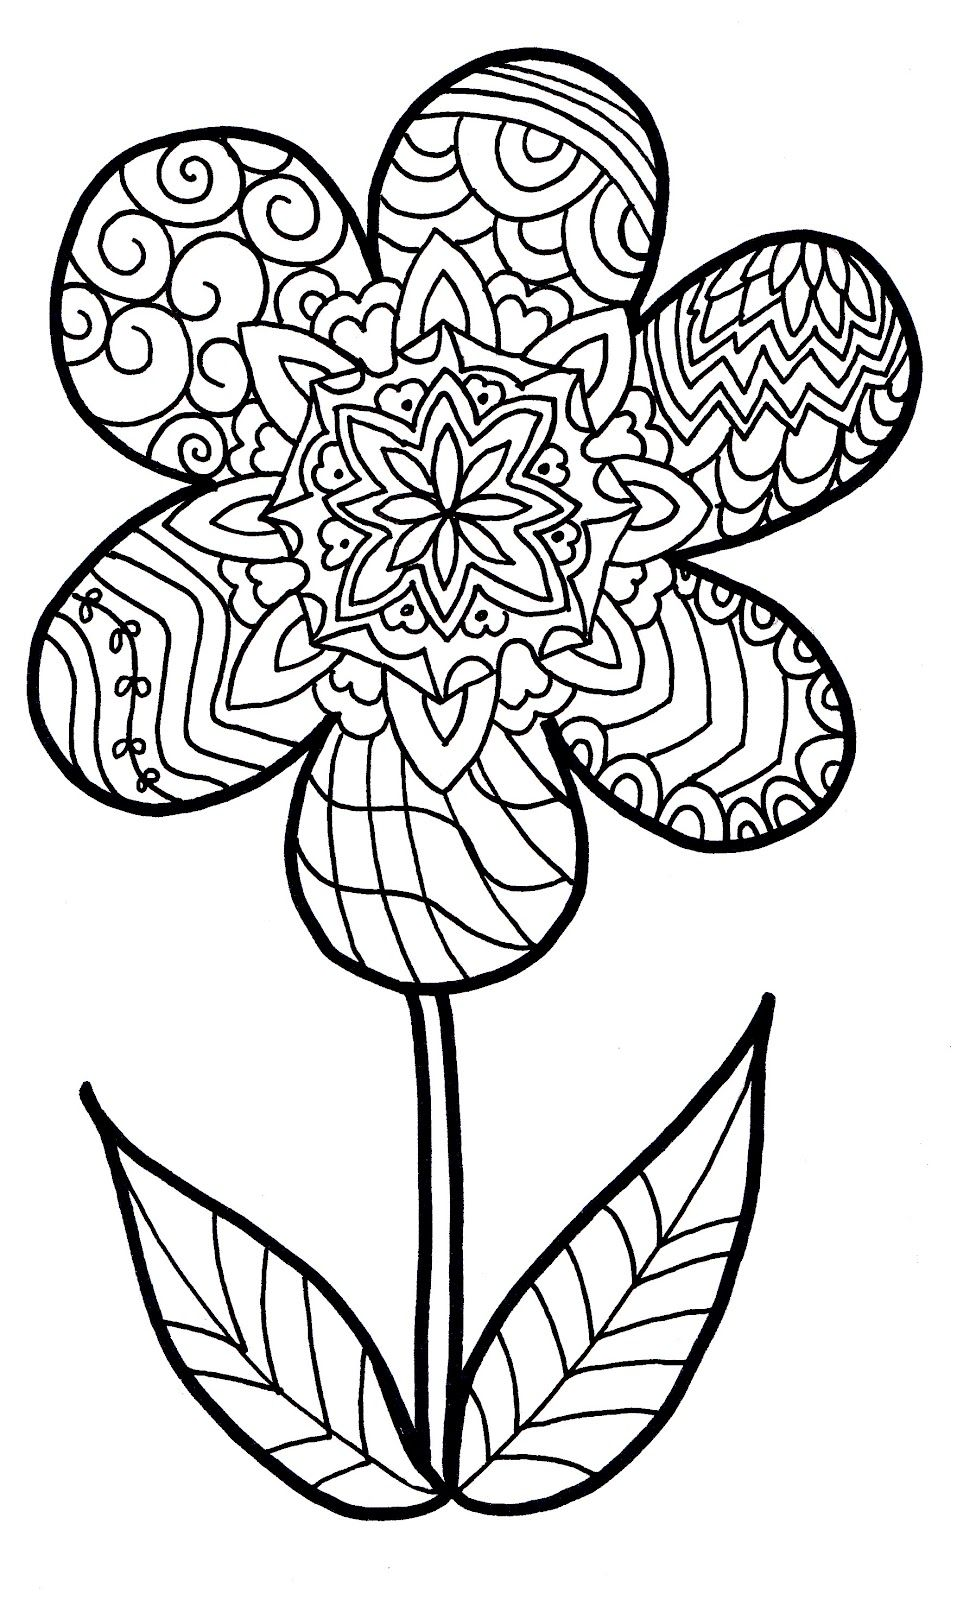 957x1600 Flower Zentangle Colouring Page Coloring Pages